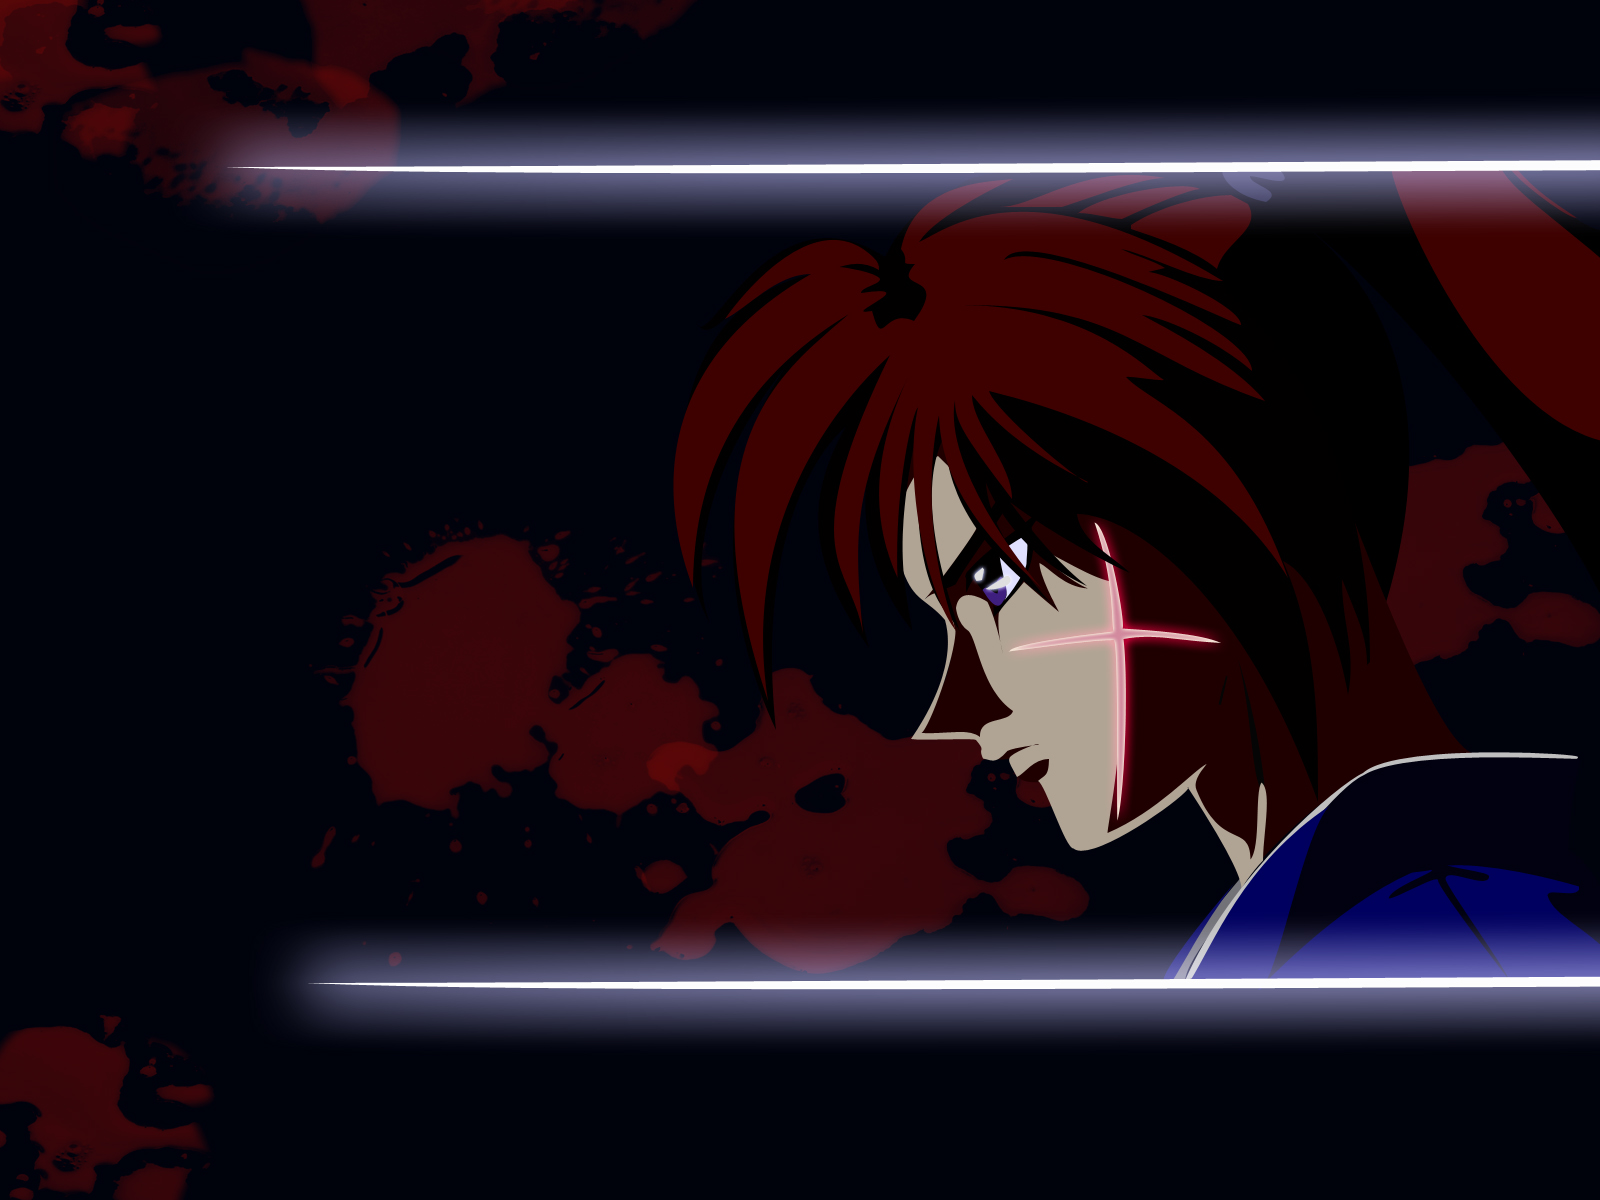 rurouni kenshin essay Below is an essay on appreciating kenshin himura from anti essays, your source for research papers, essays, and term paper examples kenshin himura—the battousai, the man with x-scar-mark in the face, the monster turned into an angel (yes, for me his kindness is just heart-melting.